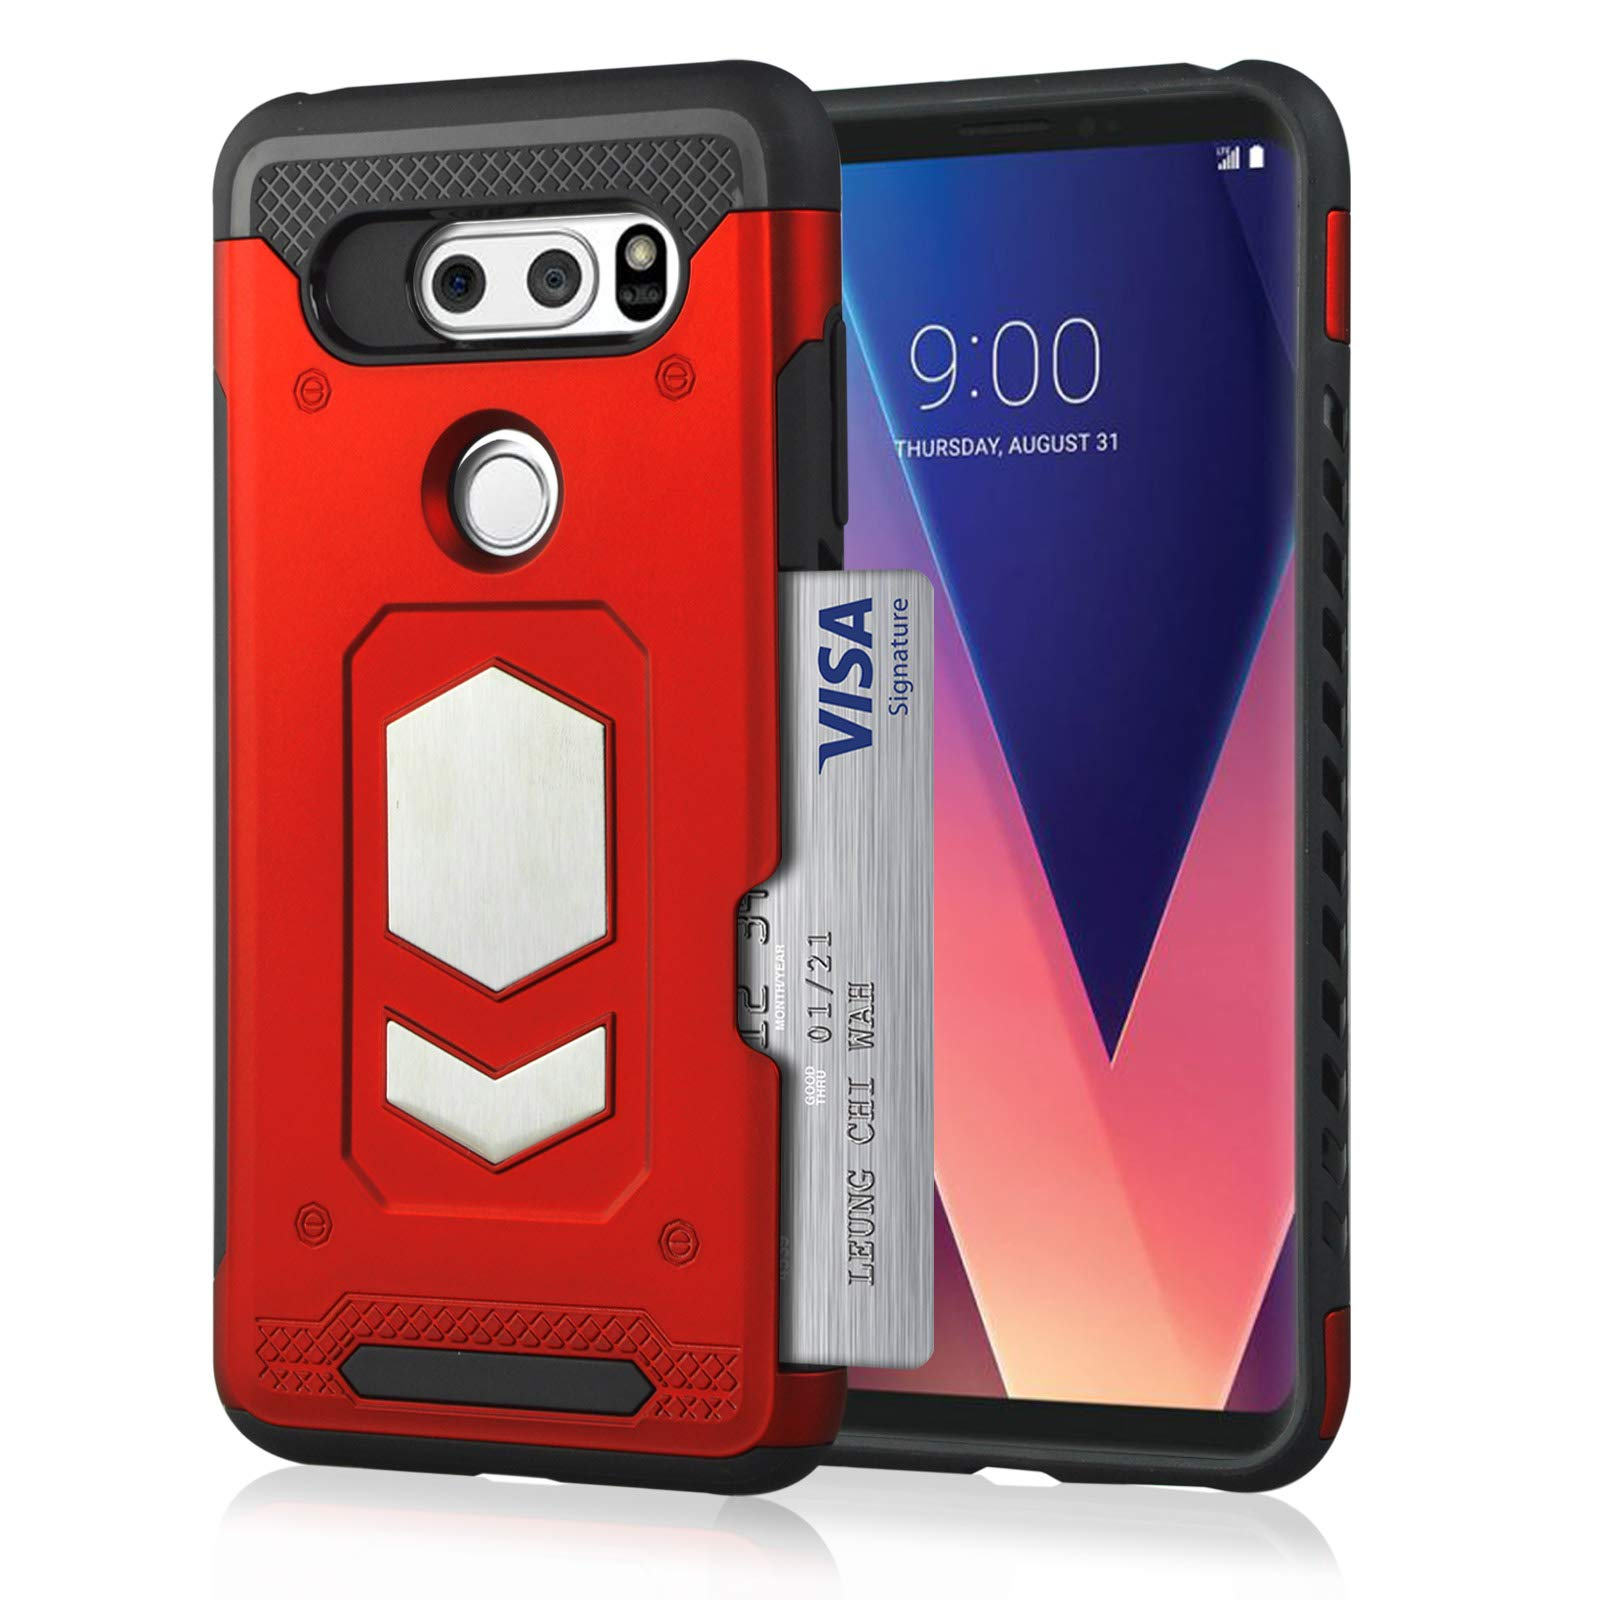 LG V30 Wallet Case, Slim Armor Shockproof Heavy Duty Protection Dual Layer TPU&PC Hybrid Case Cover with Card Slot Car Mount Holder Thin Case for LG V30 (2) by 22miter